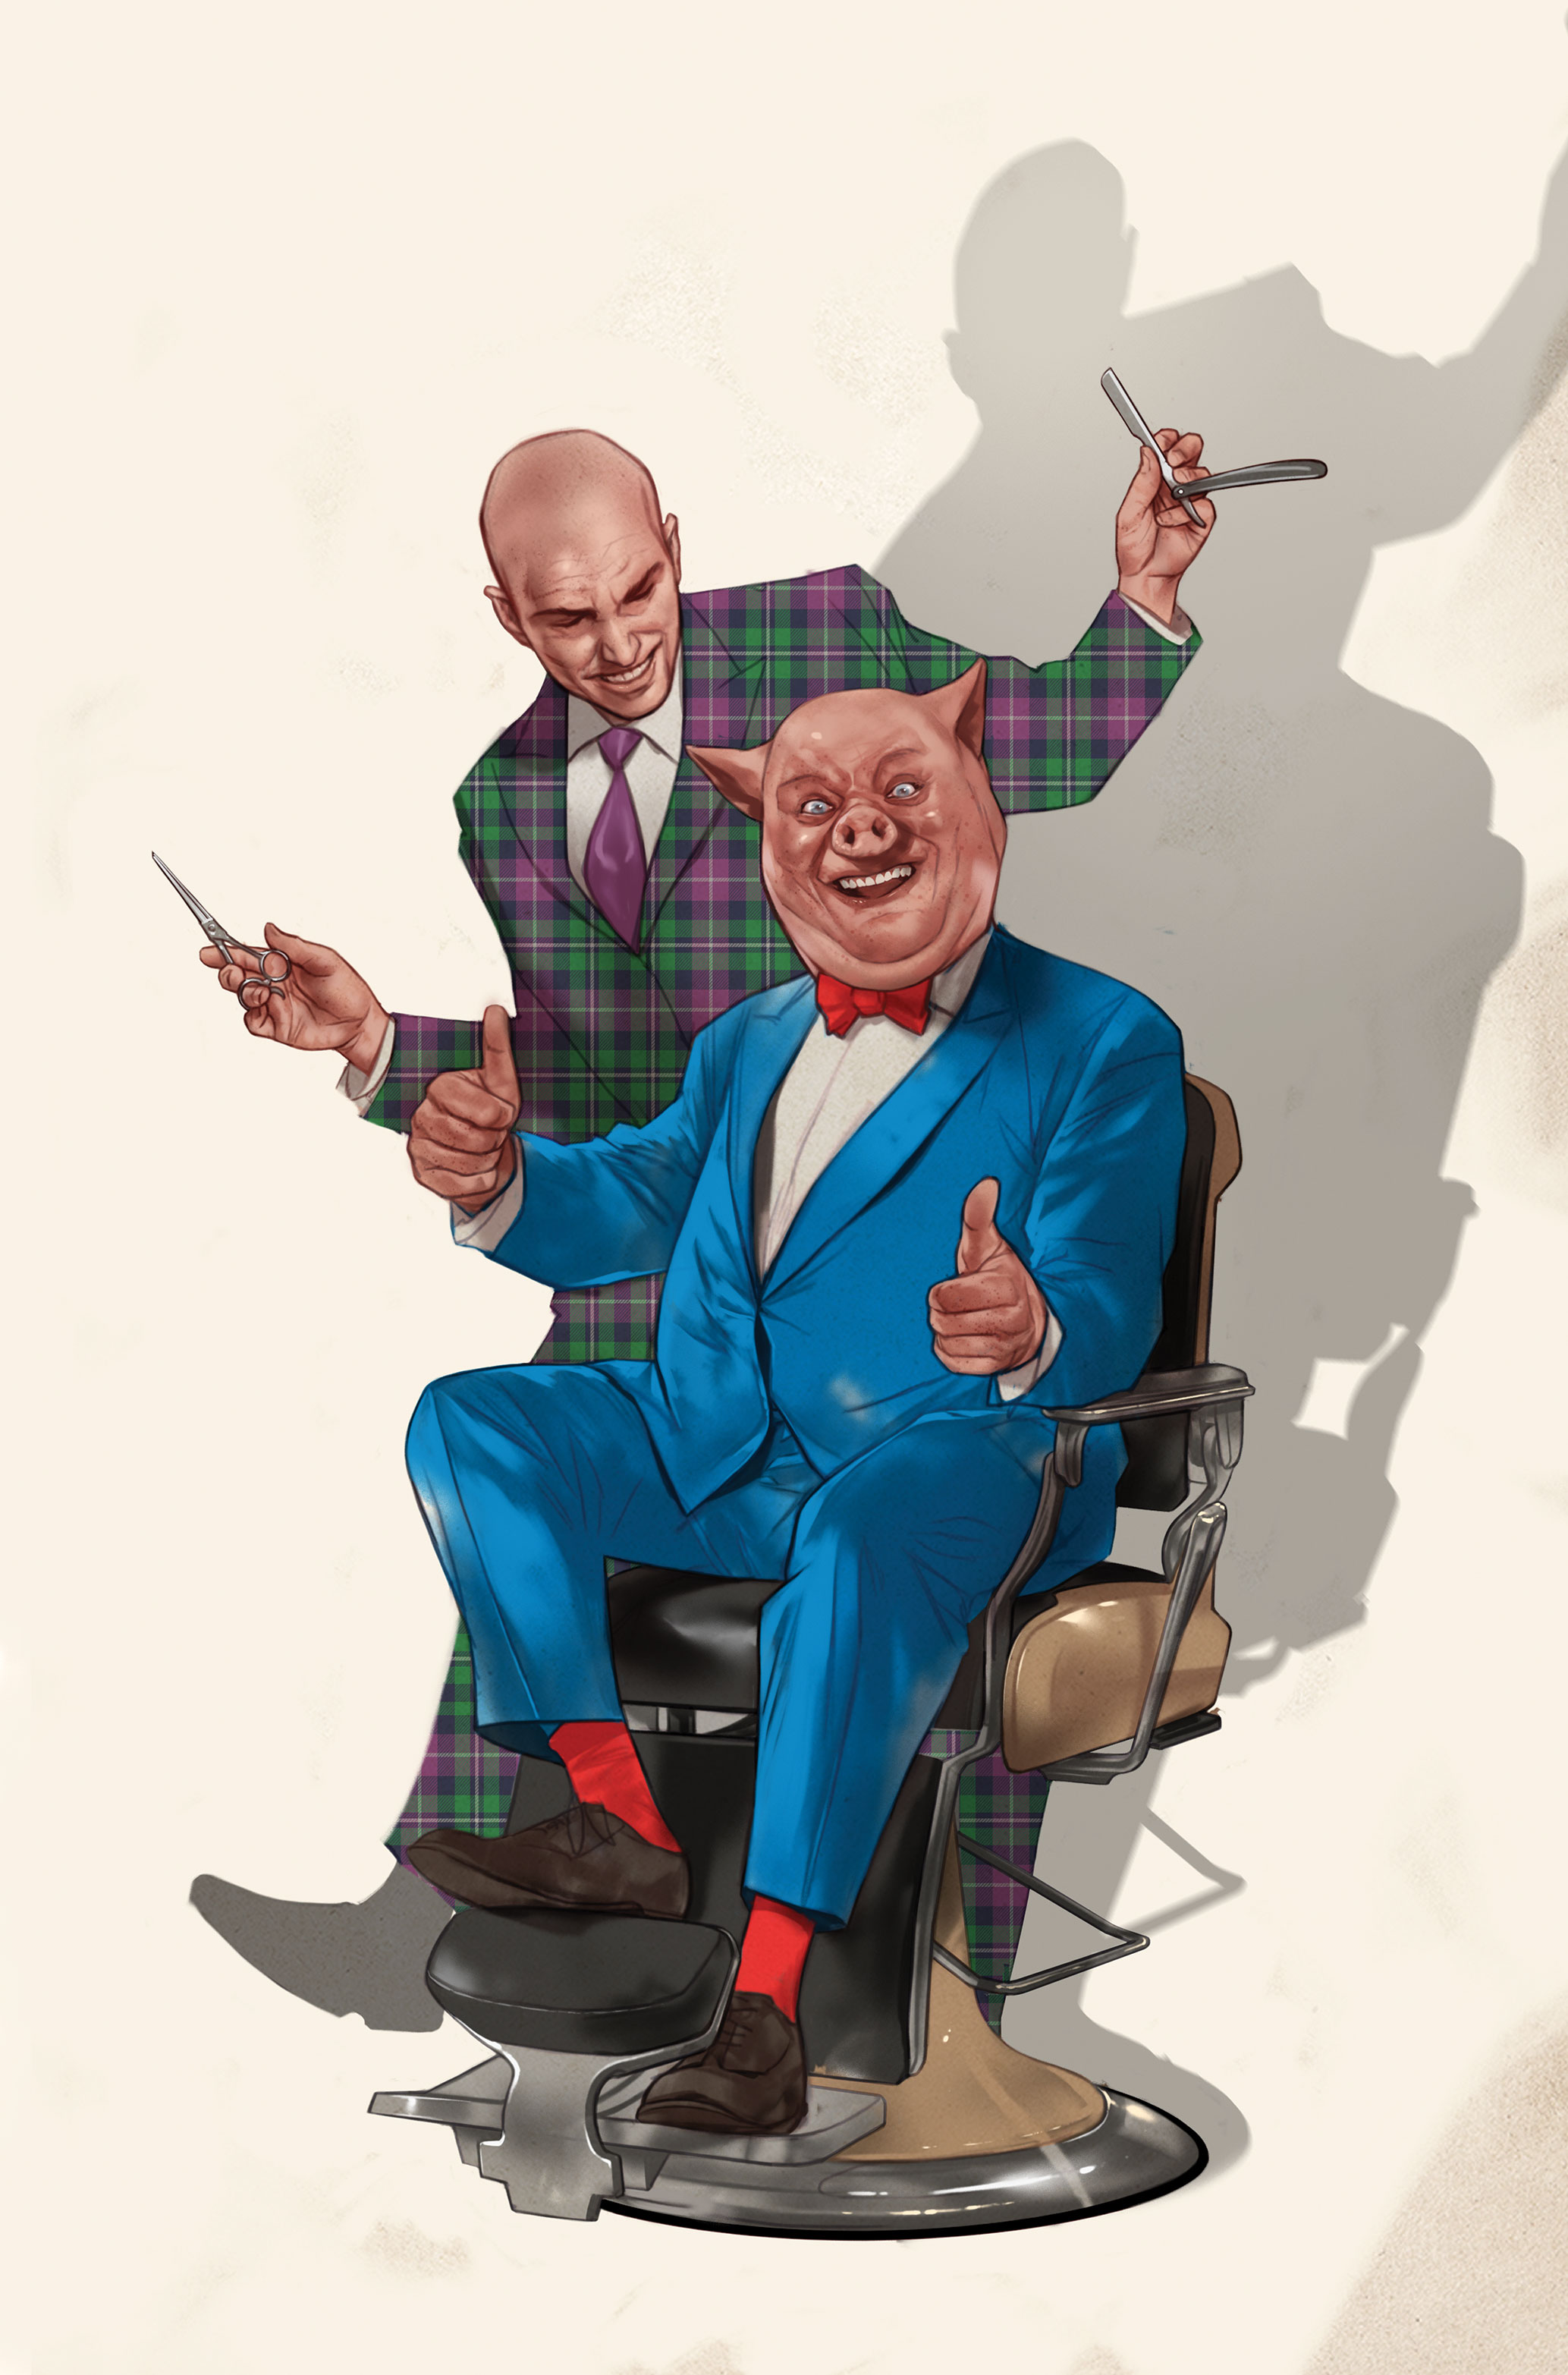 DC Comics team up with Looney Tunes - Lex Luthor and Porky Pig